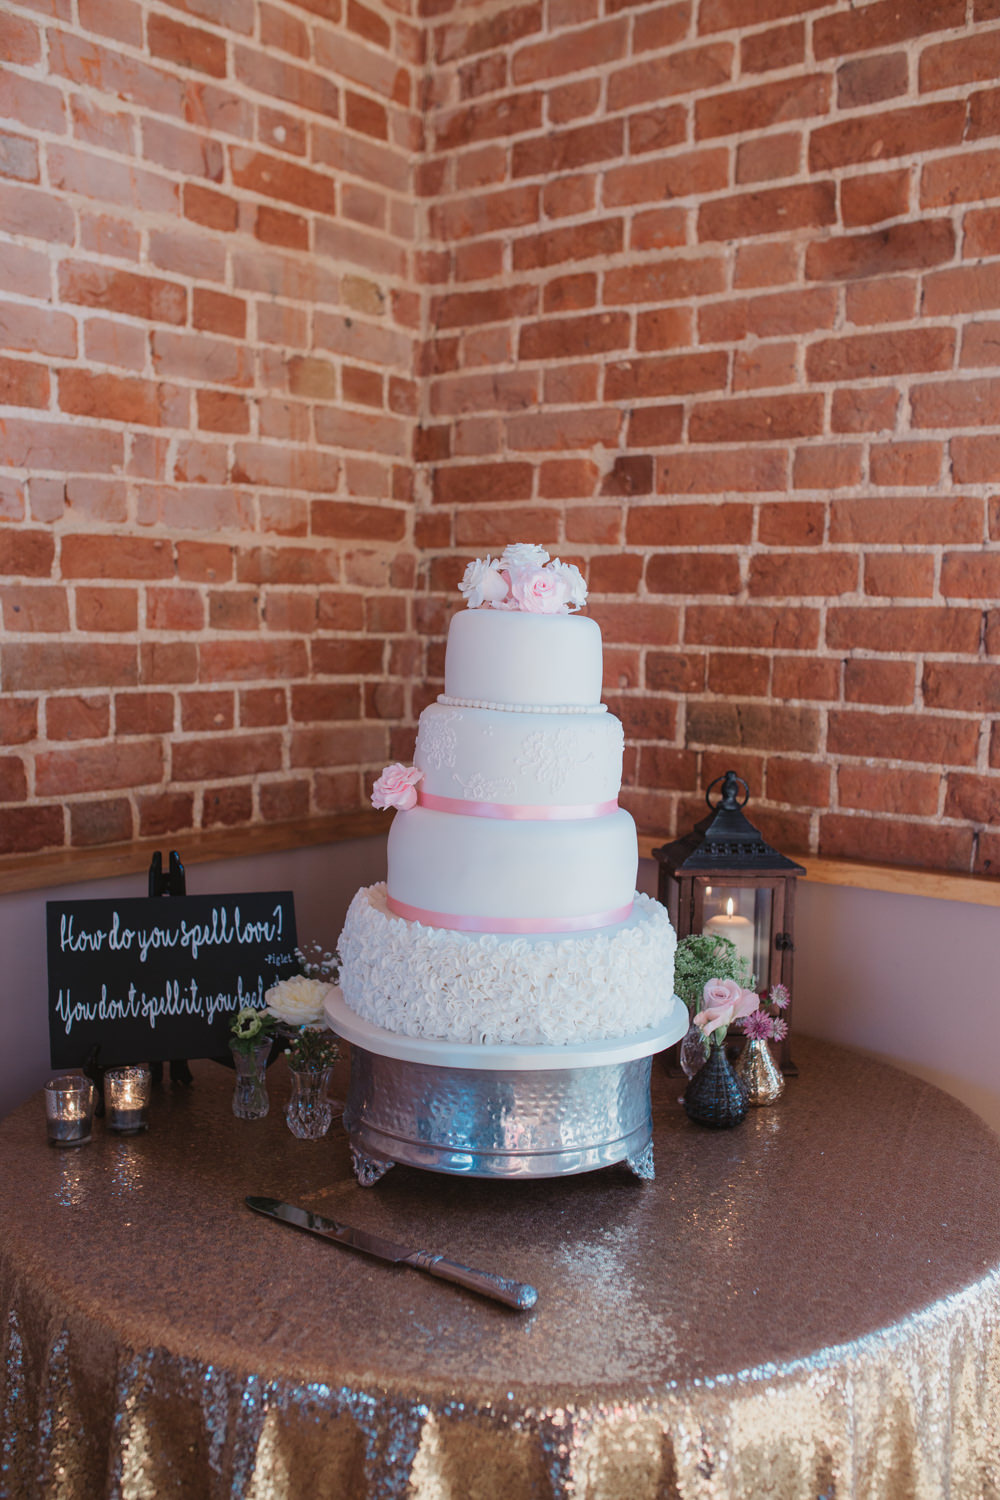 White Icing Cake Four Tier Pink Ribbon Rose Table Southwood Hall Wedding Emily Tyler Photography